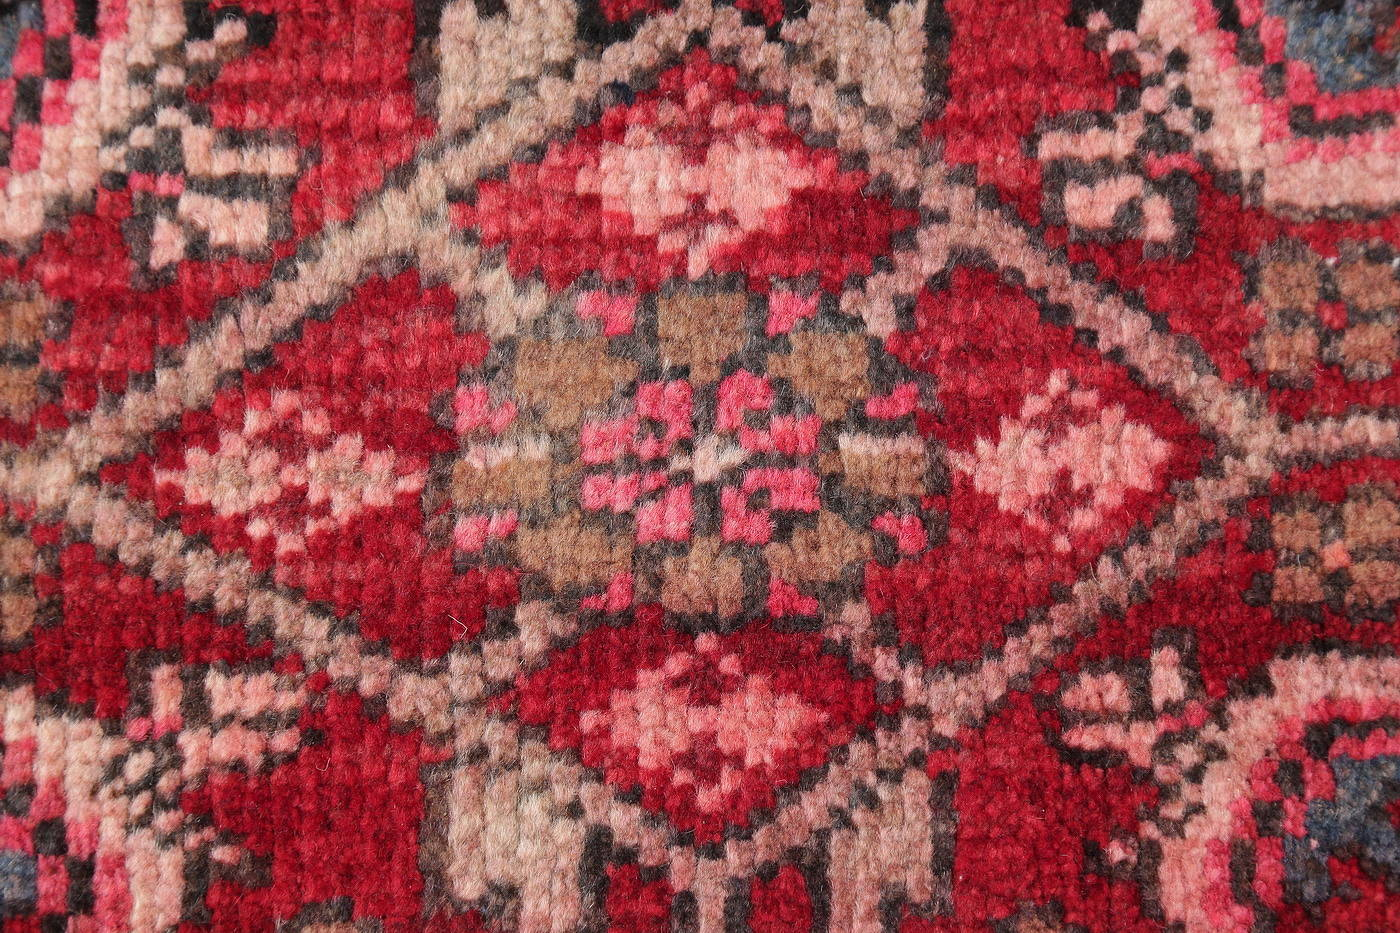 Hand-Knotted Red Geometric Heriz Persian Area Rug Wool 4x5 image 11